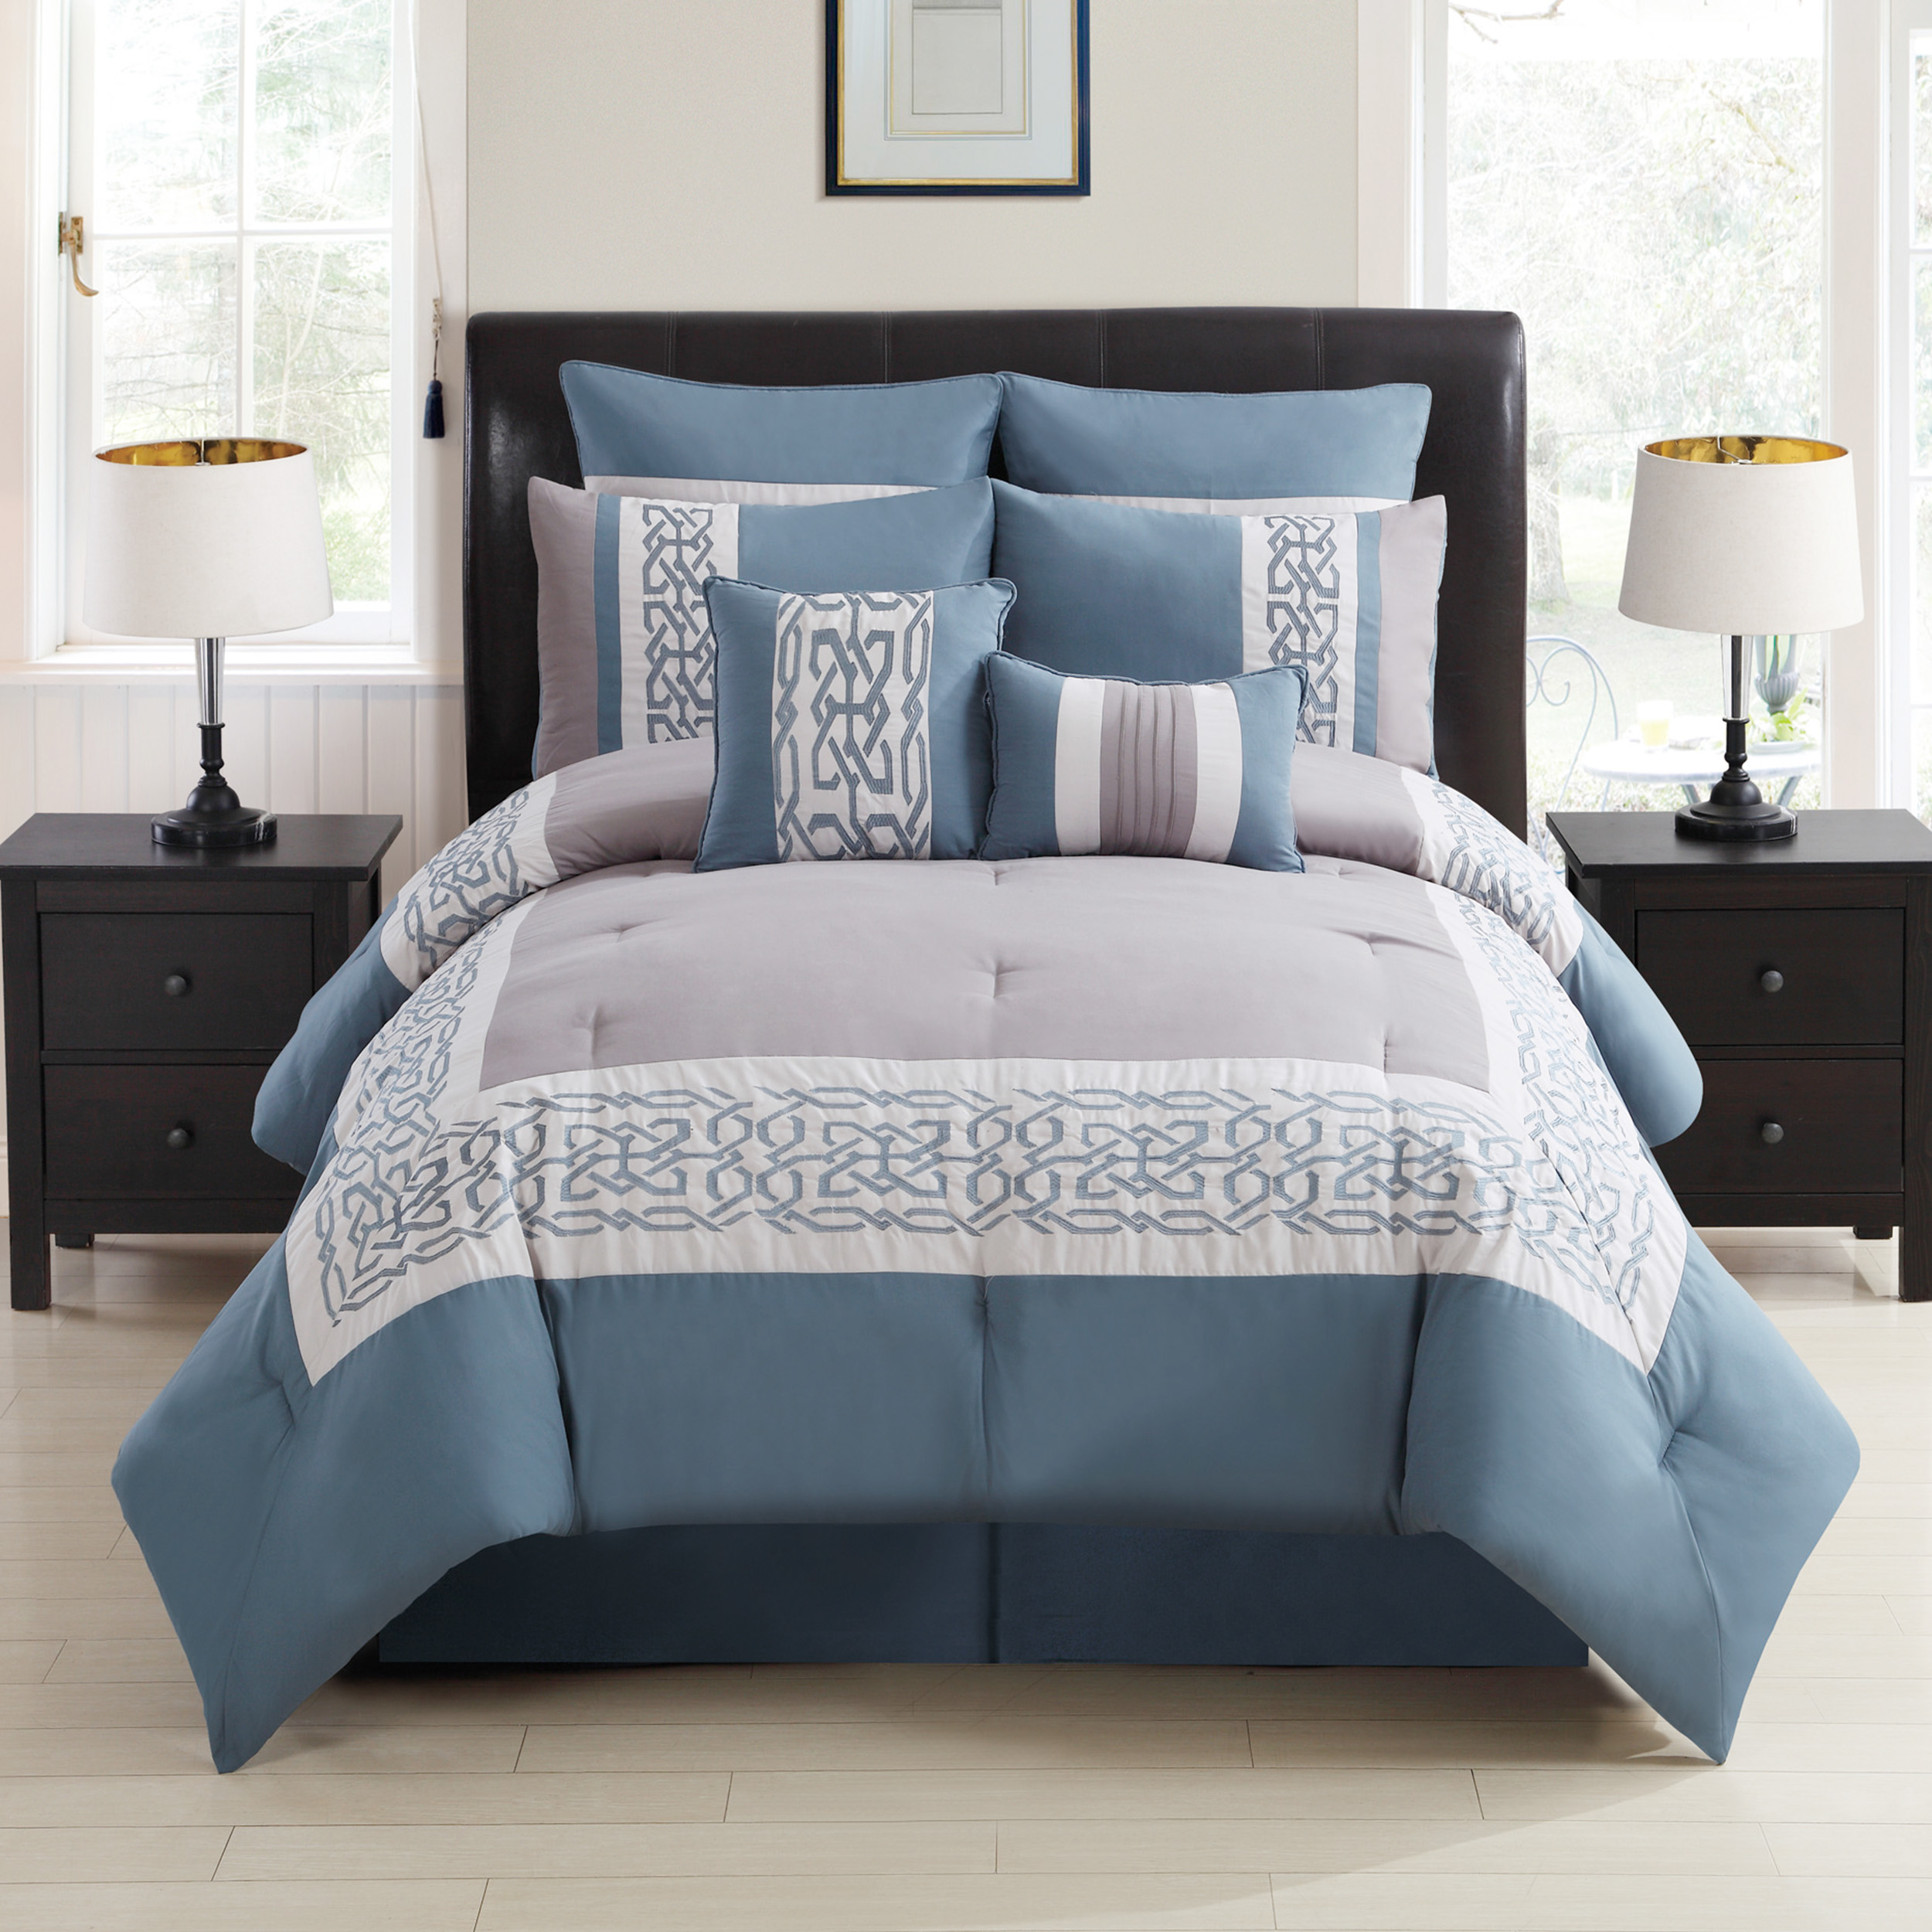 Brinley co embroidered 8 pc queen size comforter set ebay for Bedroom bedding sets